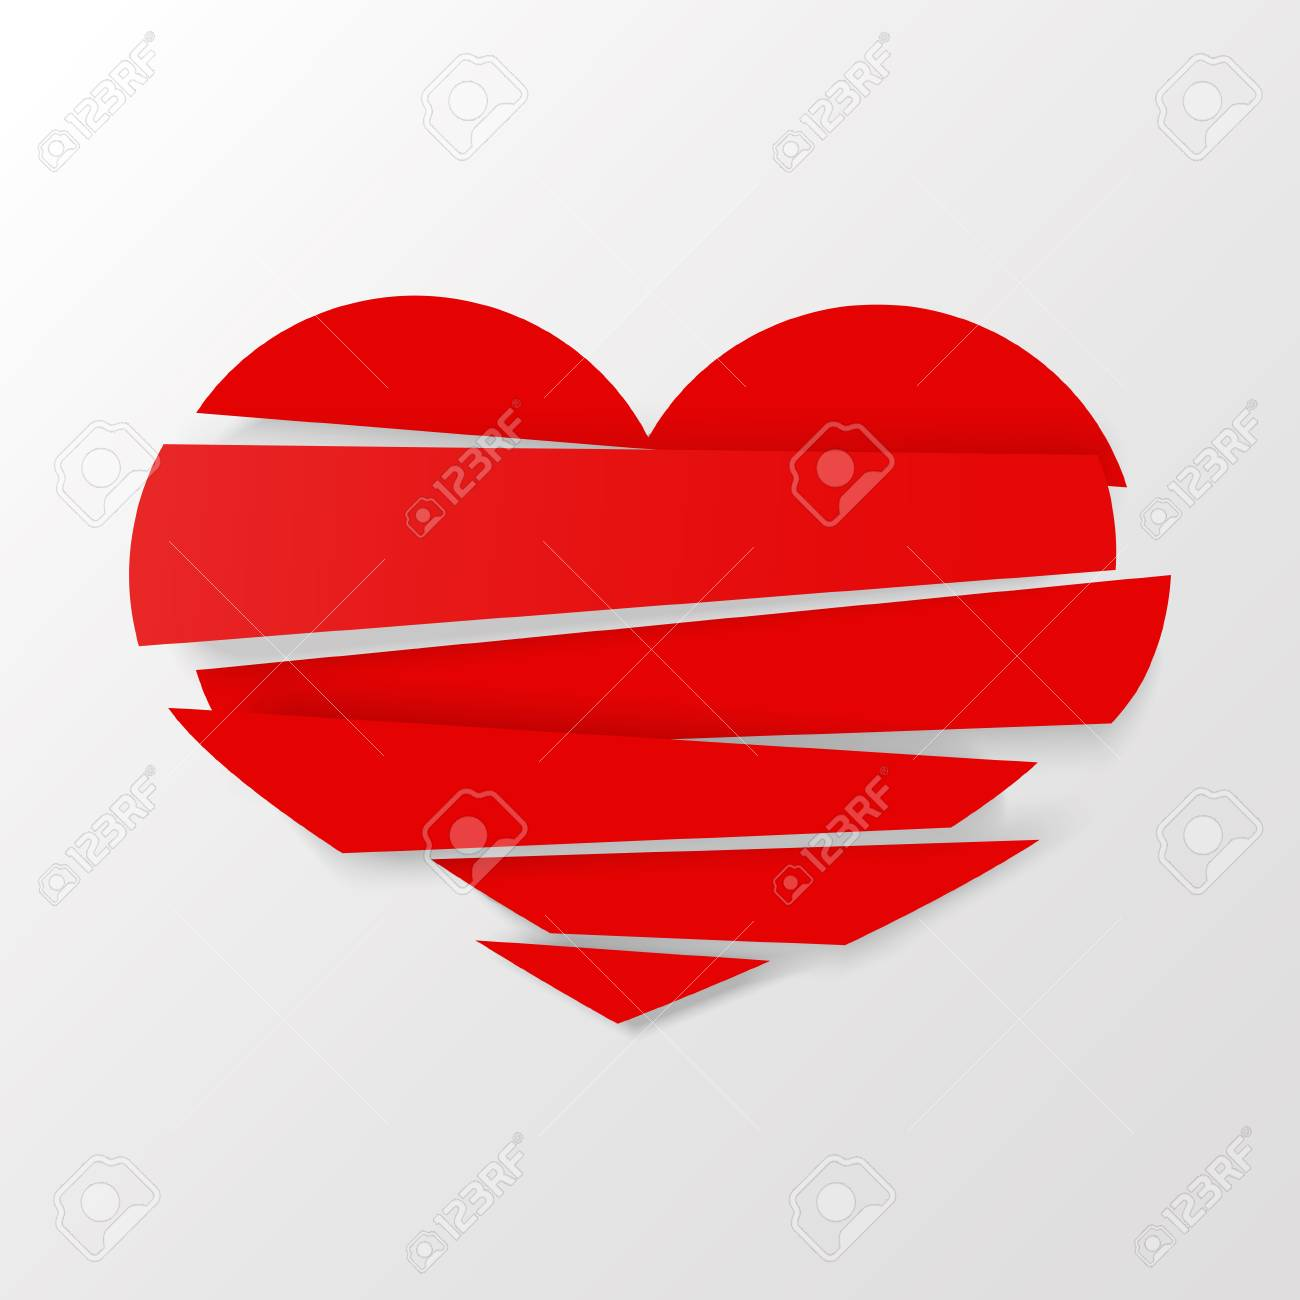 Red stripes broken heart vector on white background could be used as icon sign